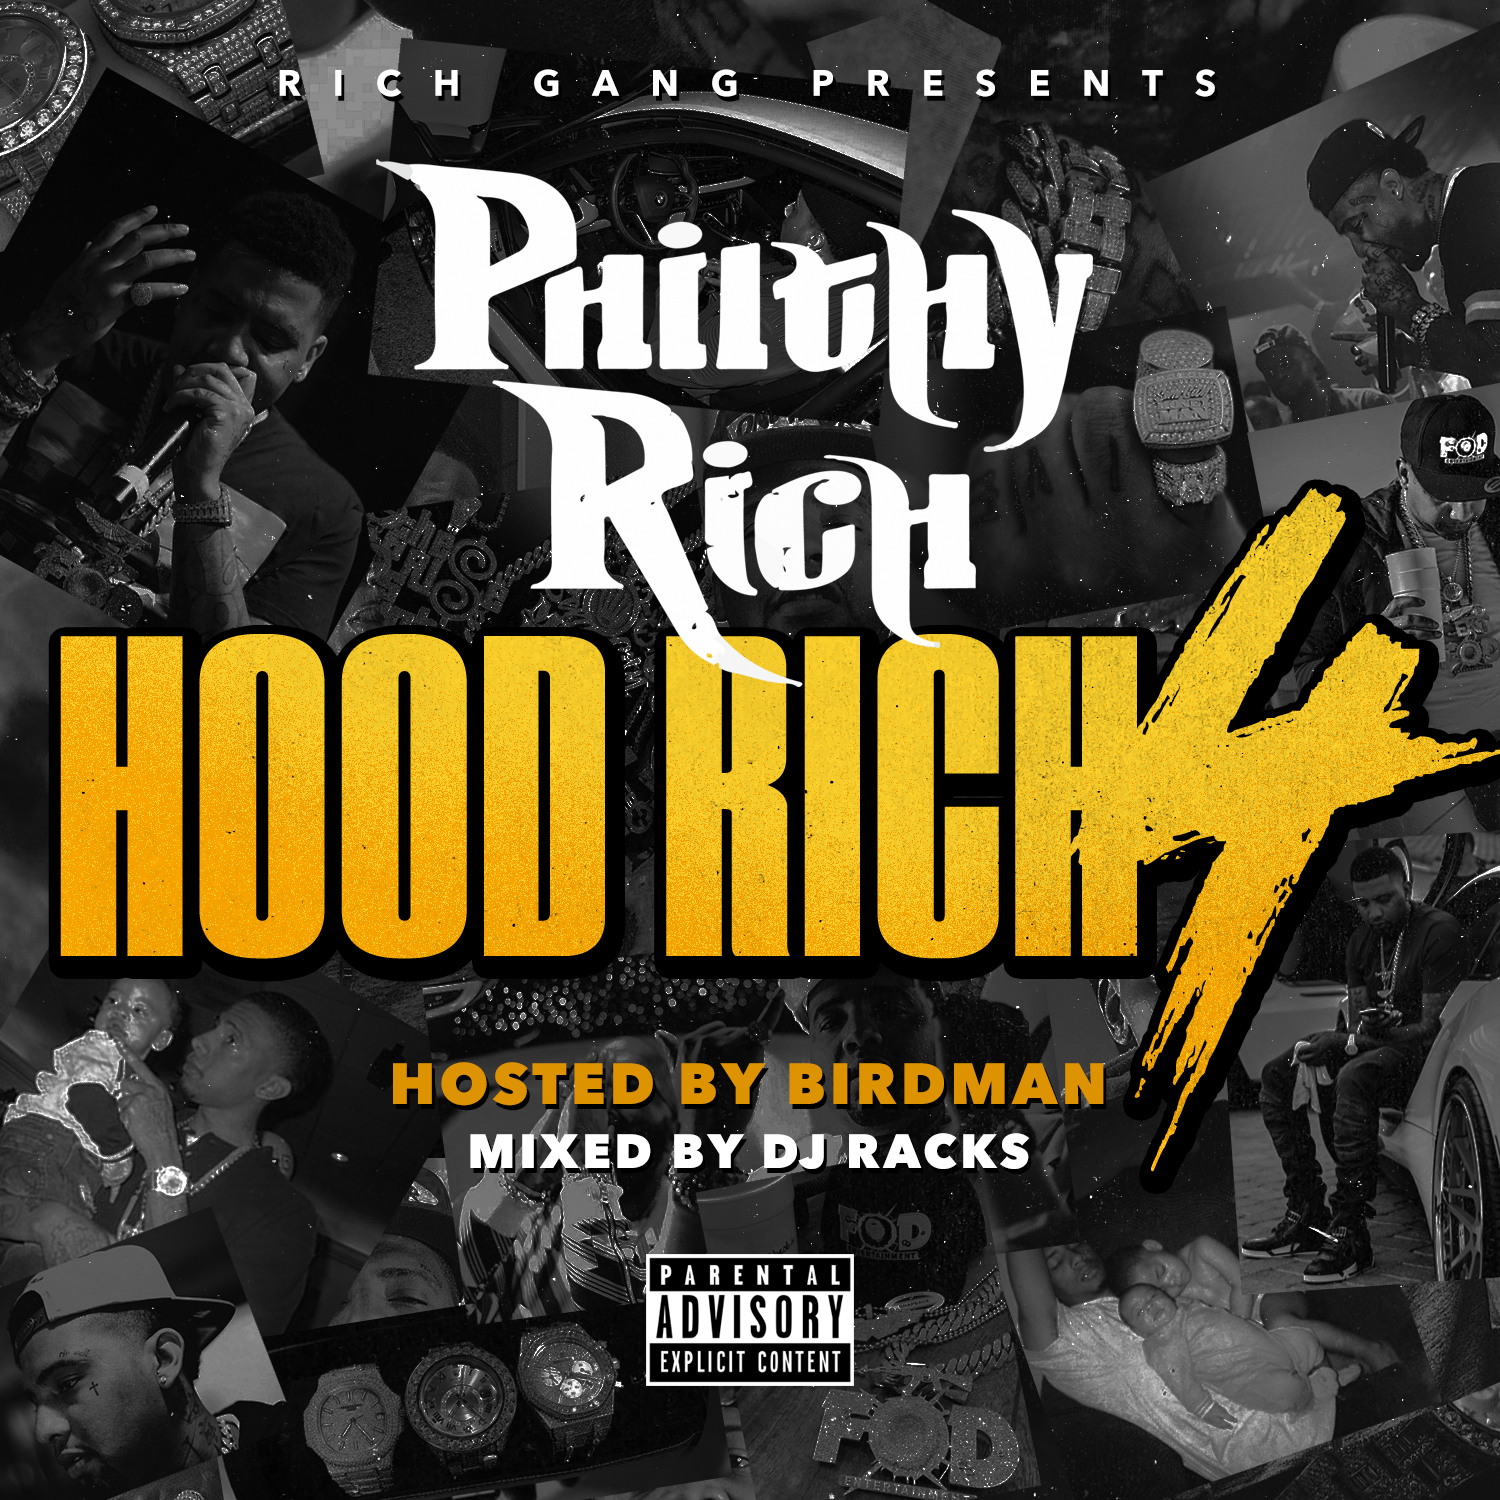 philthy-rich-hoodrich-4-richgang